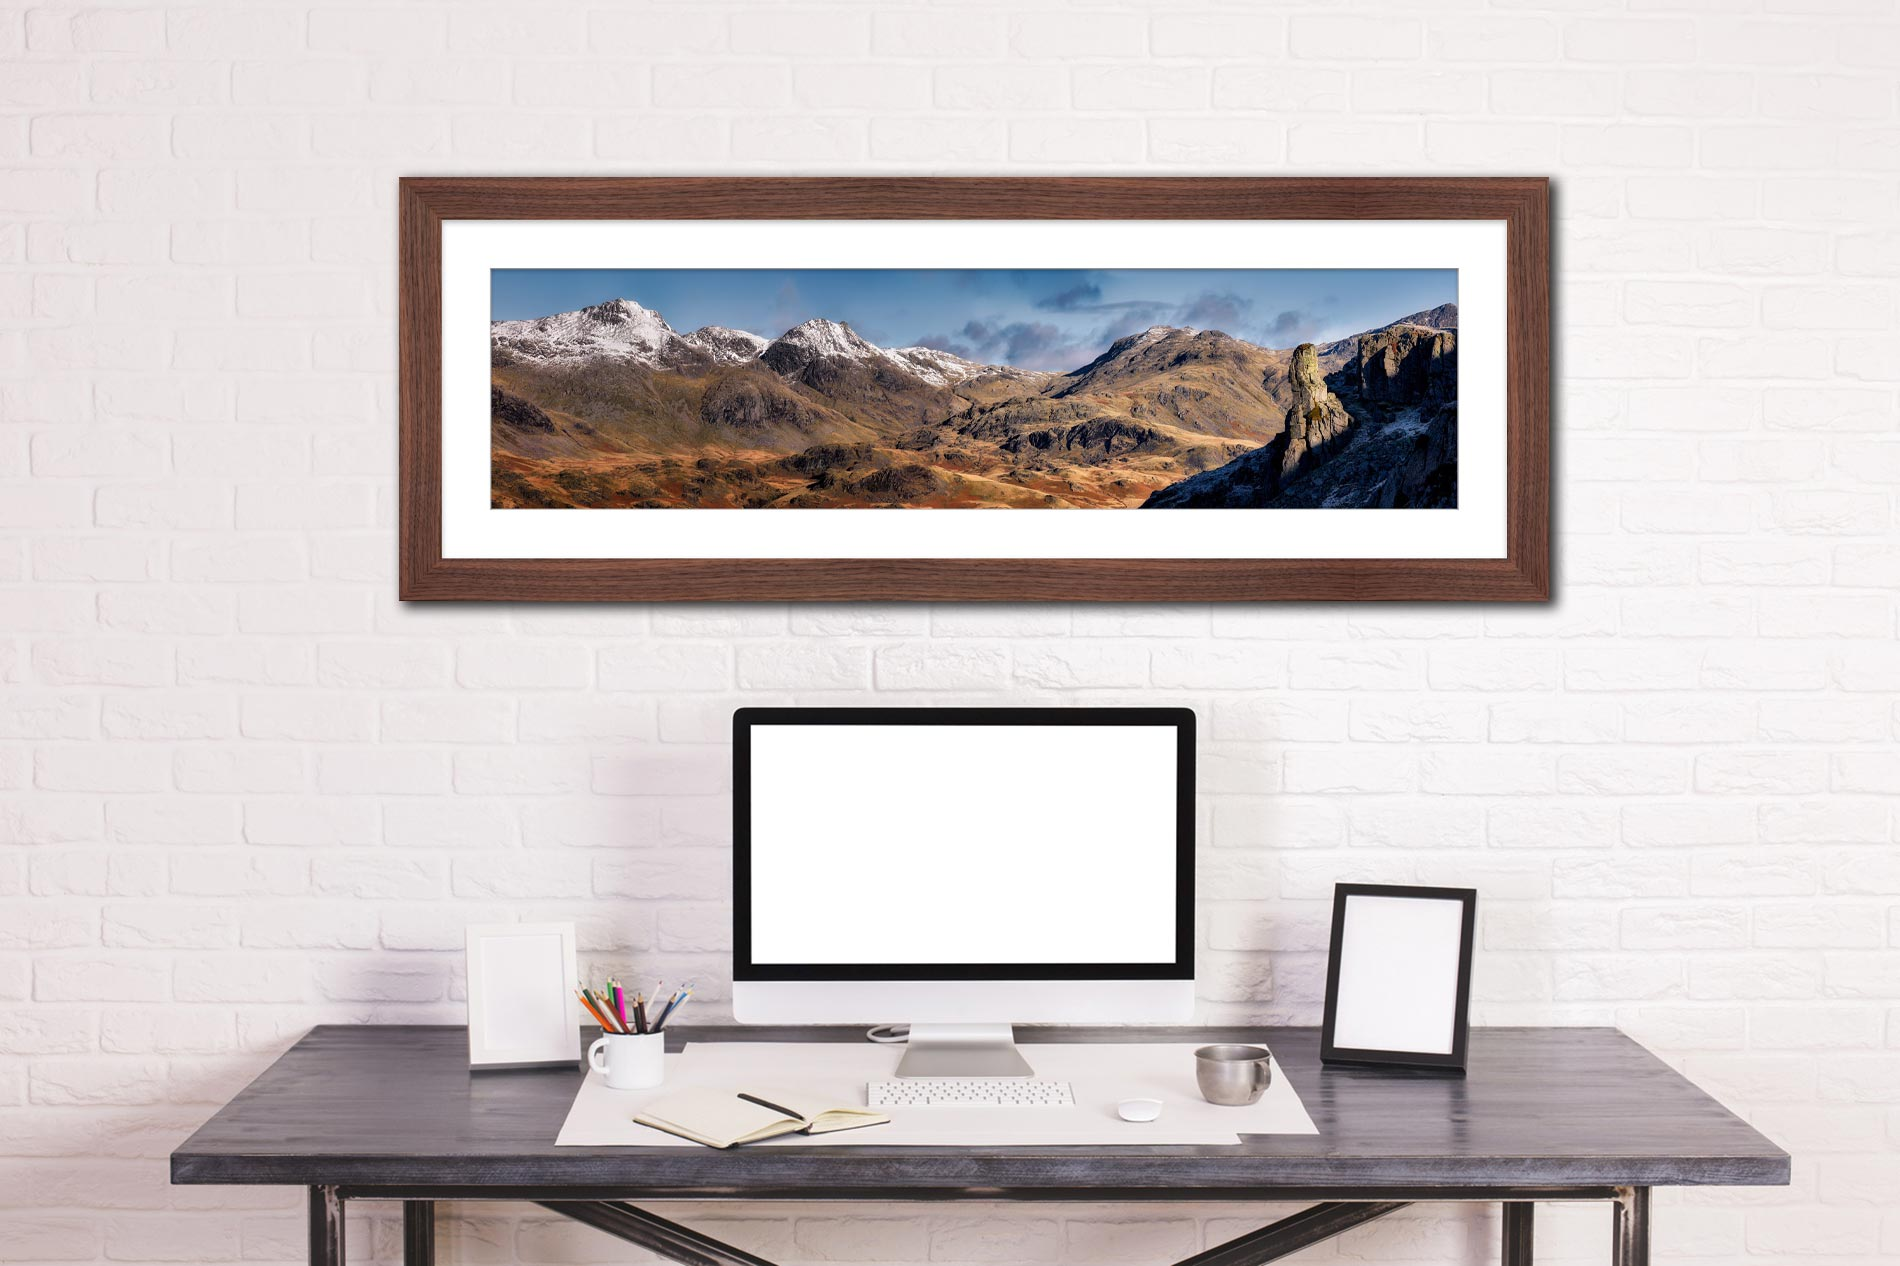 Eskdale Needle and Scafell Panorama - Framed Print with Mount on Wall